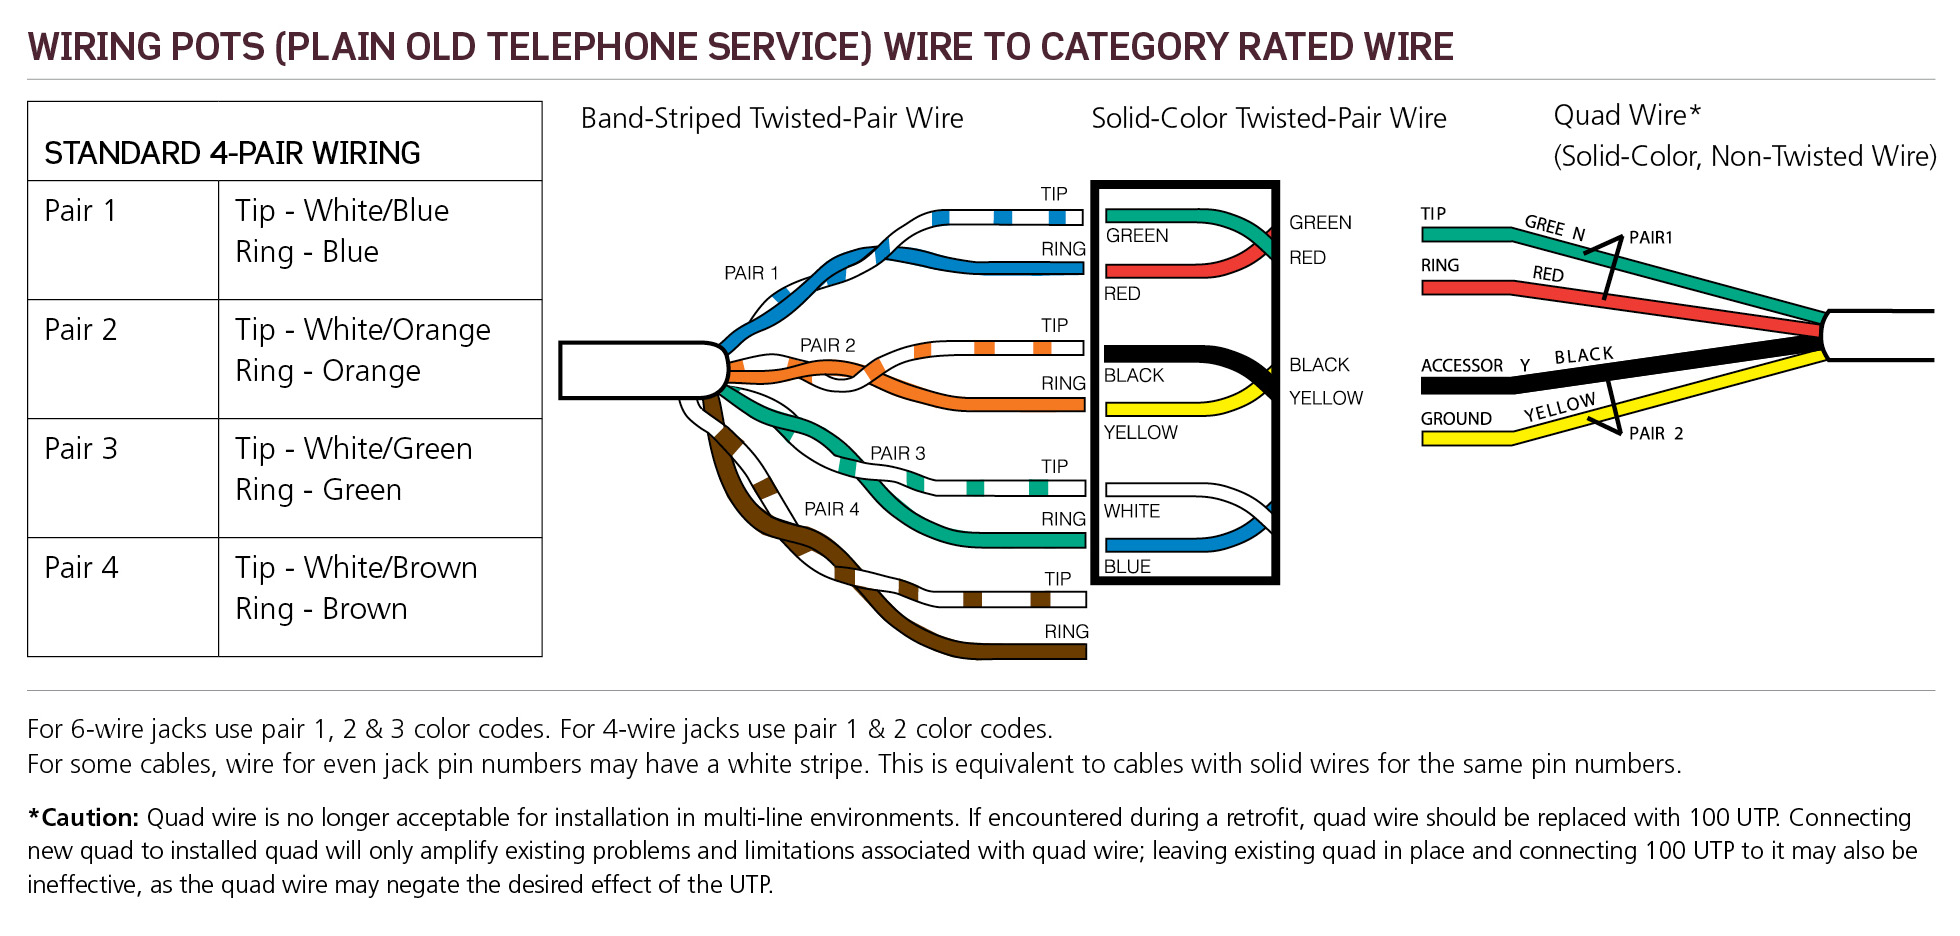 cat 3 wiring for phone diagram simple wiring schema cat 5 wiring code cat 3 wiring color code [ 1960 x 936 Pixel ]